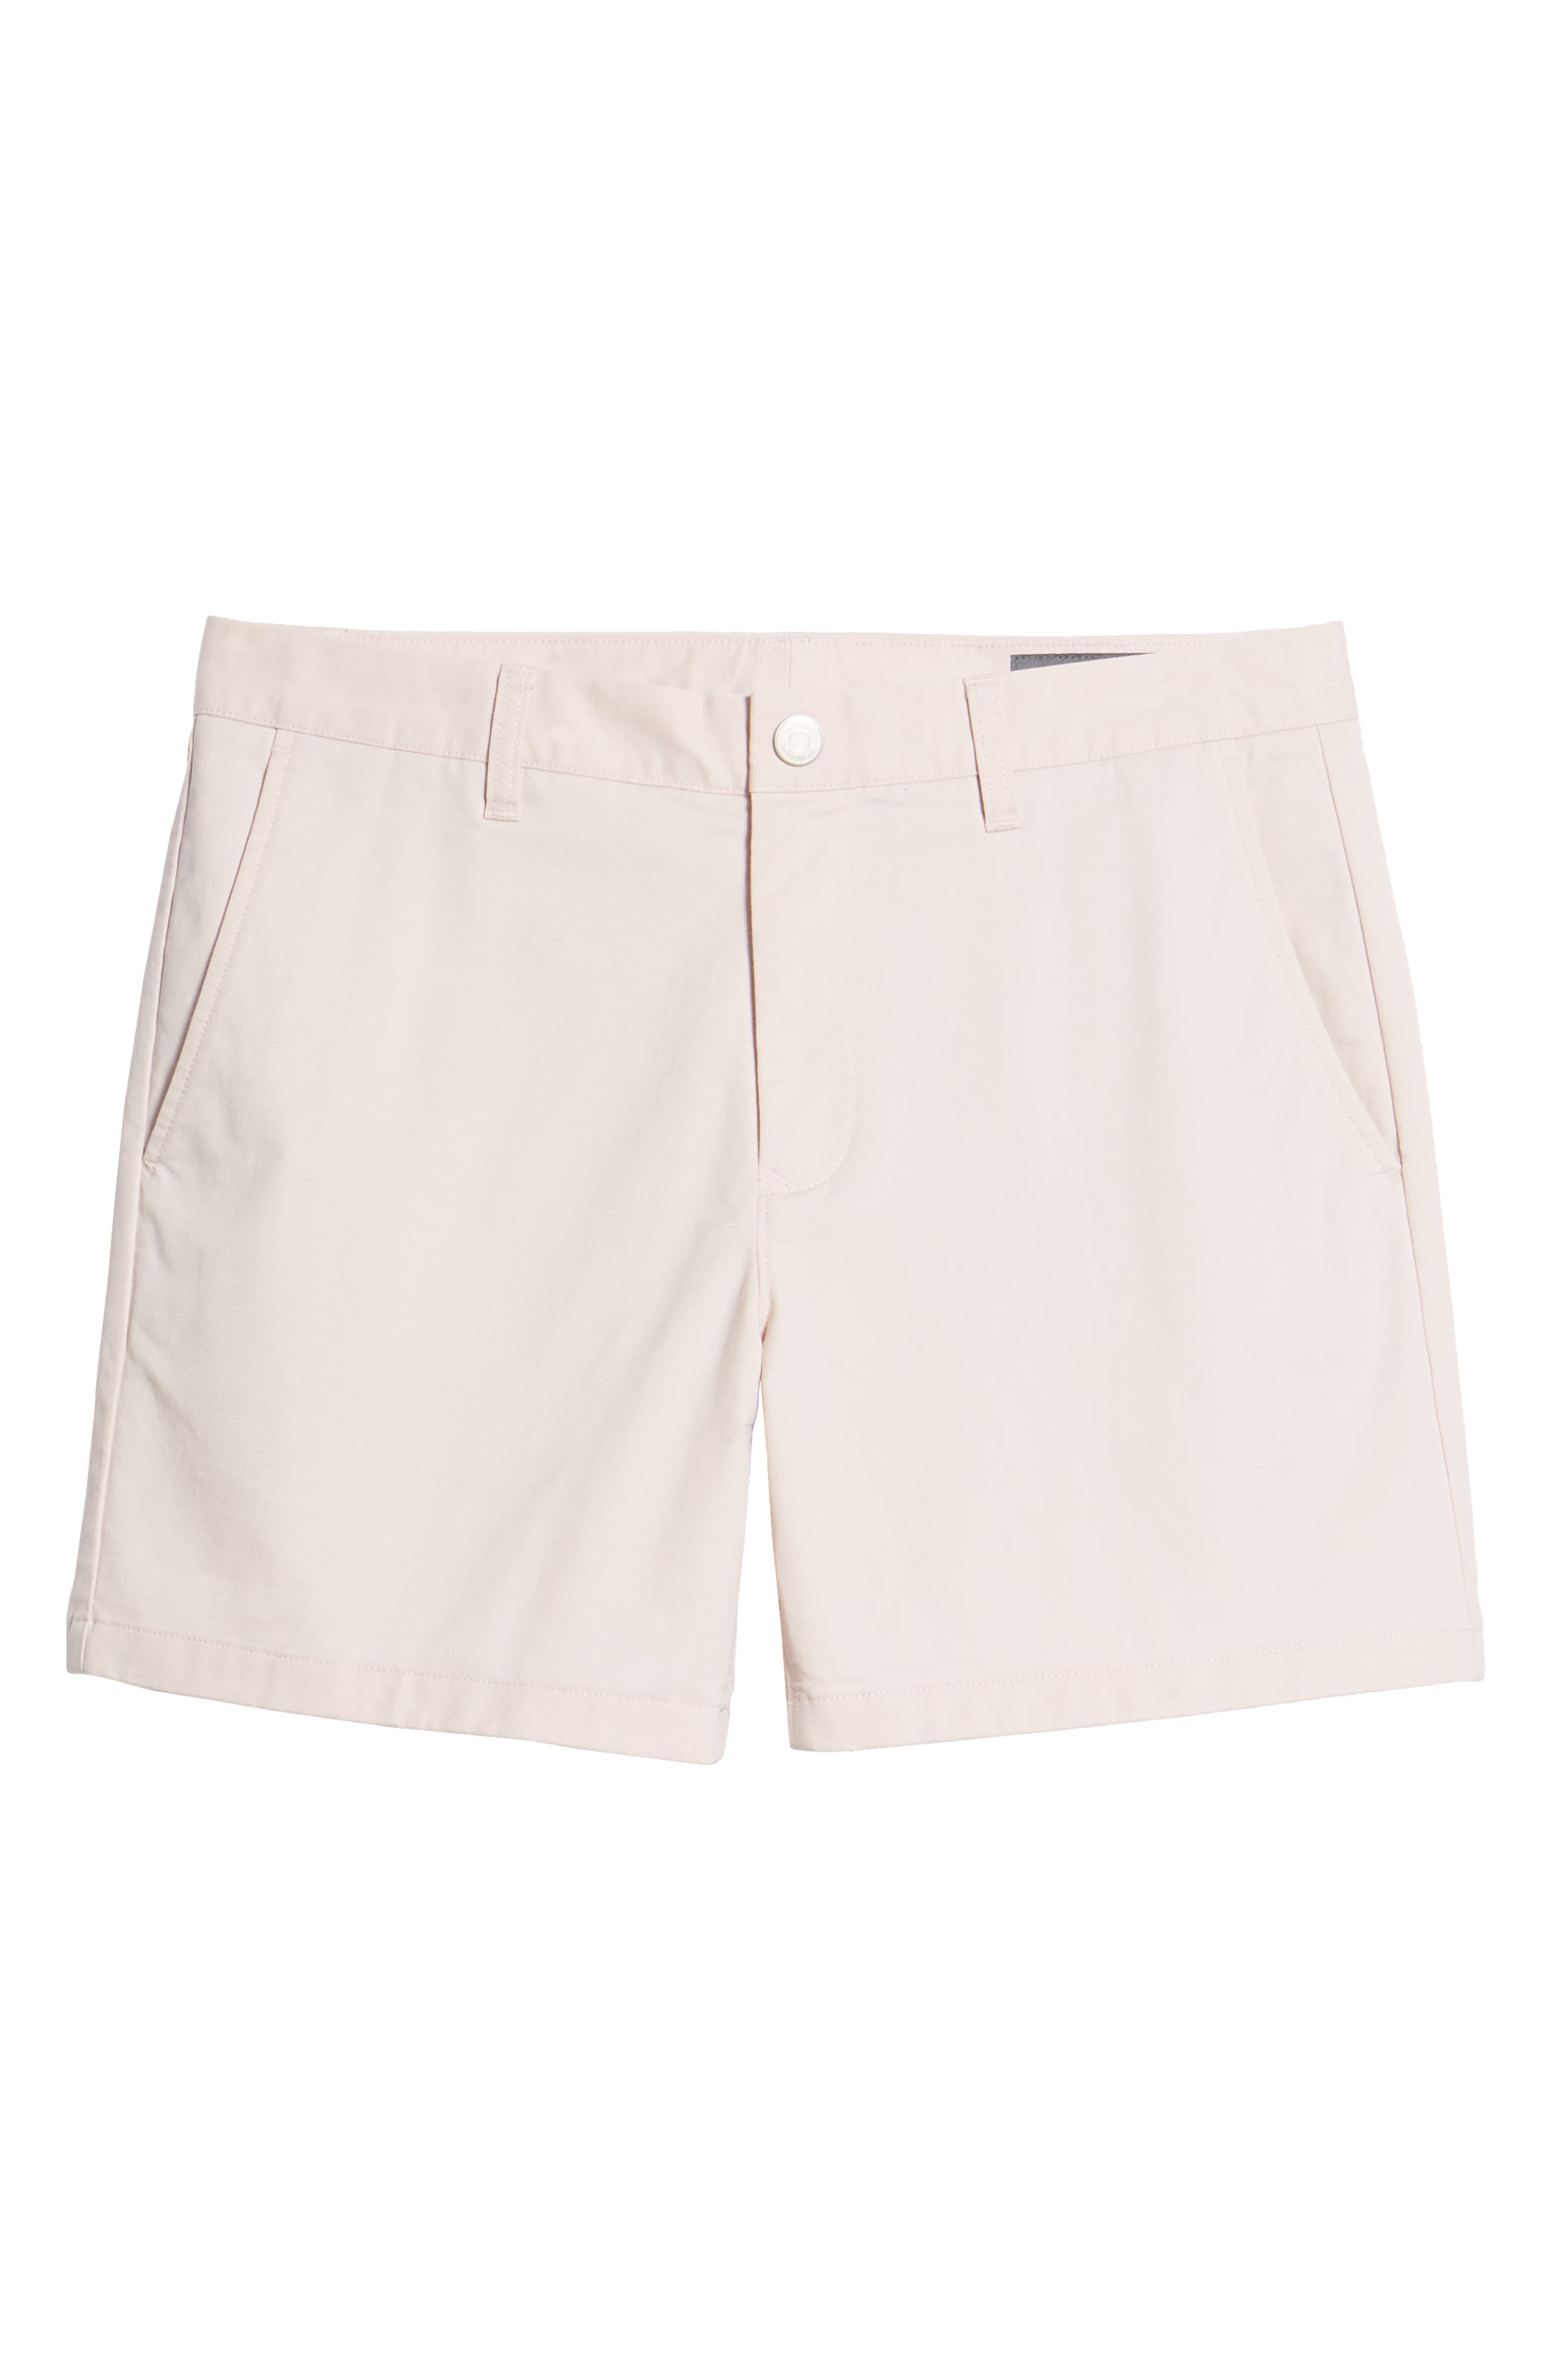 Stretch Washed Chino 5-Inch Shorts,                             Alternate thumbnail 157, color,